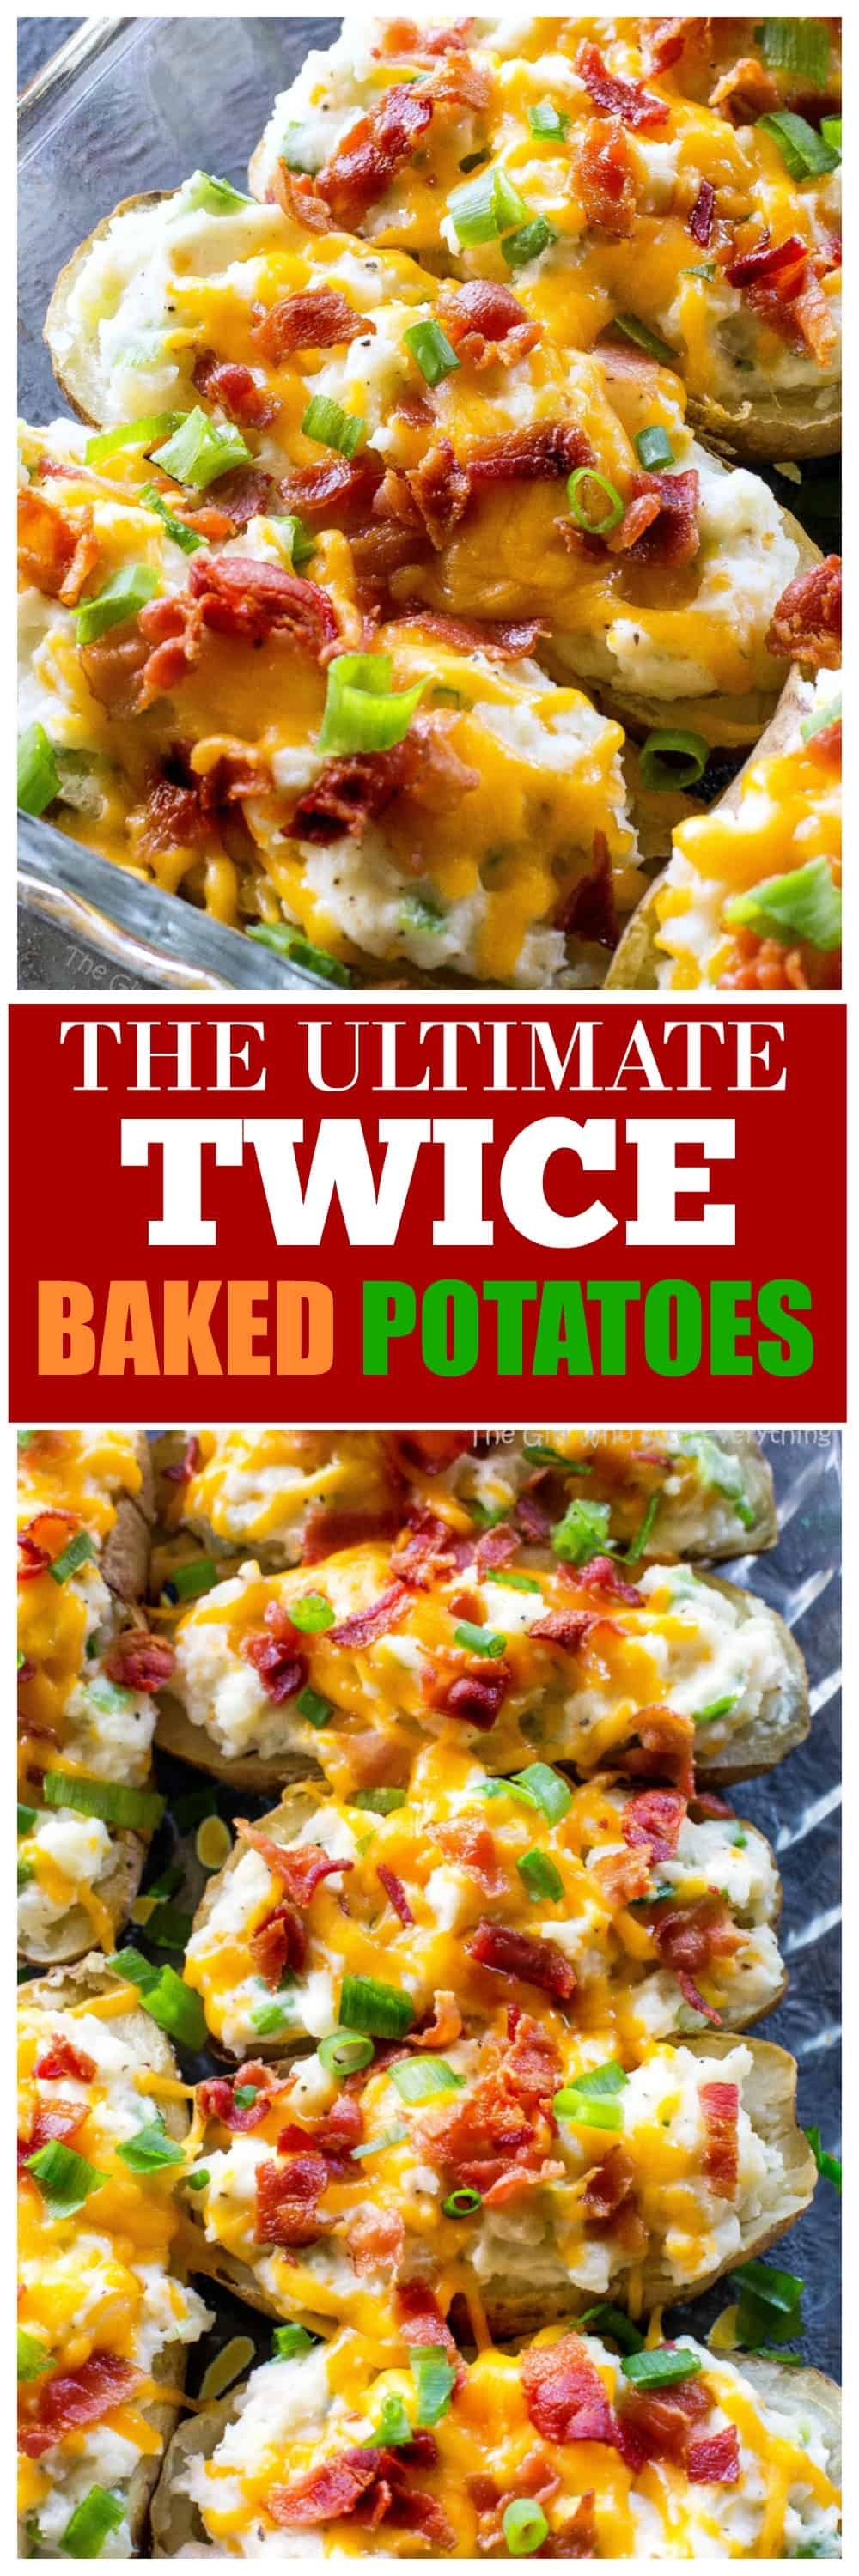 Twice Baked Potatoes Frozen Twice 2020